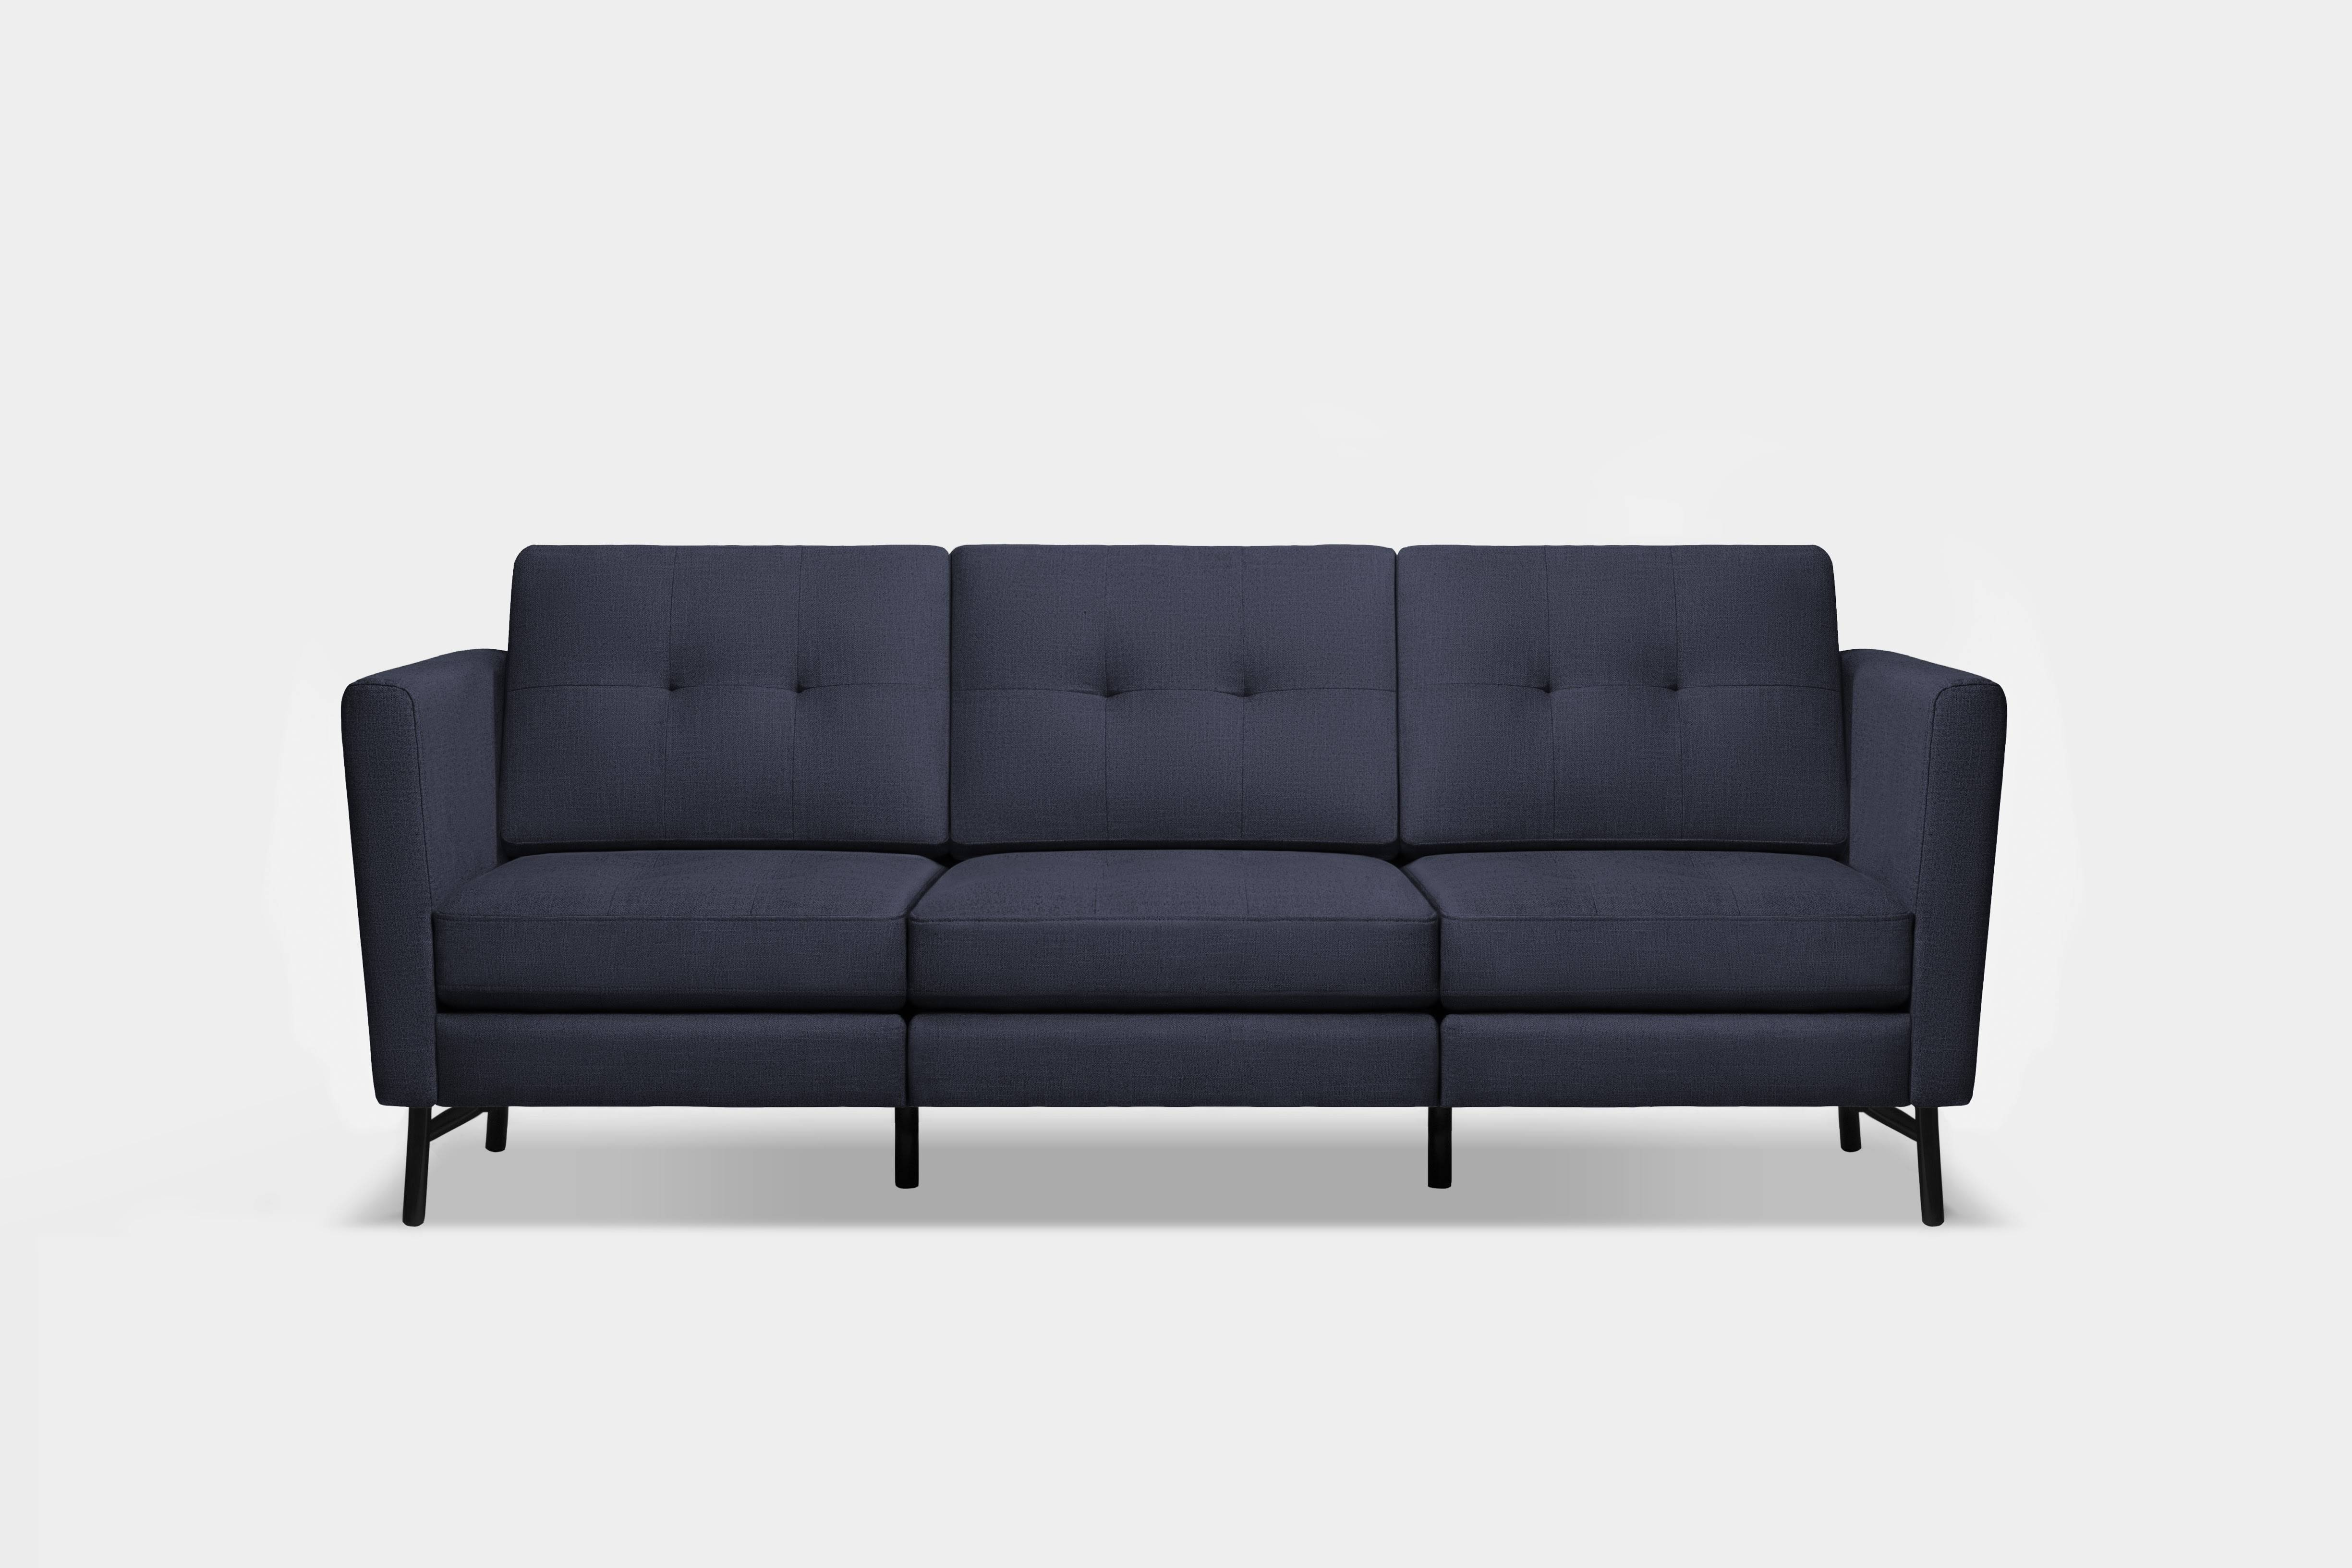 Furniture Startup Burrow Launches A Modular Sofa For Millennials intended for Mid Range Sofas (Image 13 of 30)